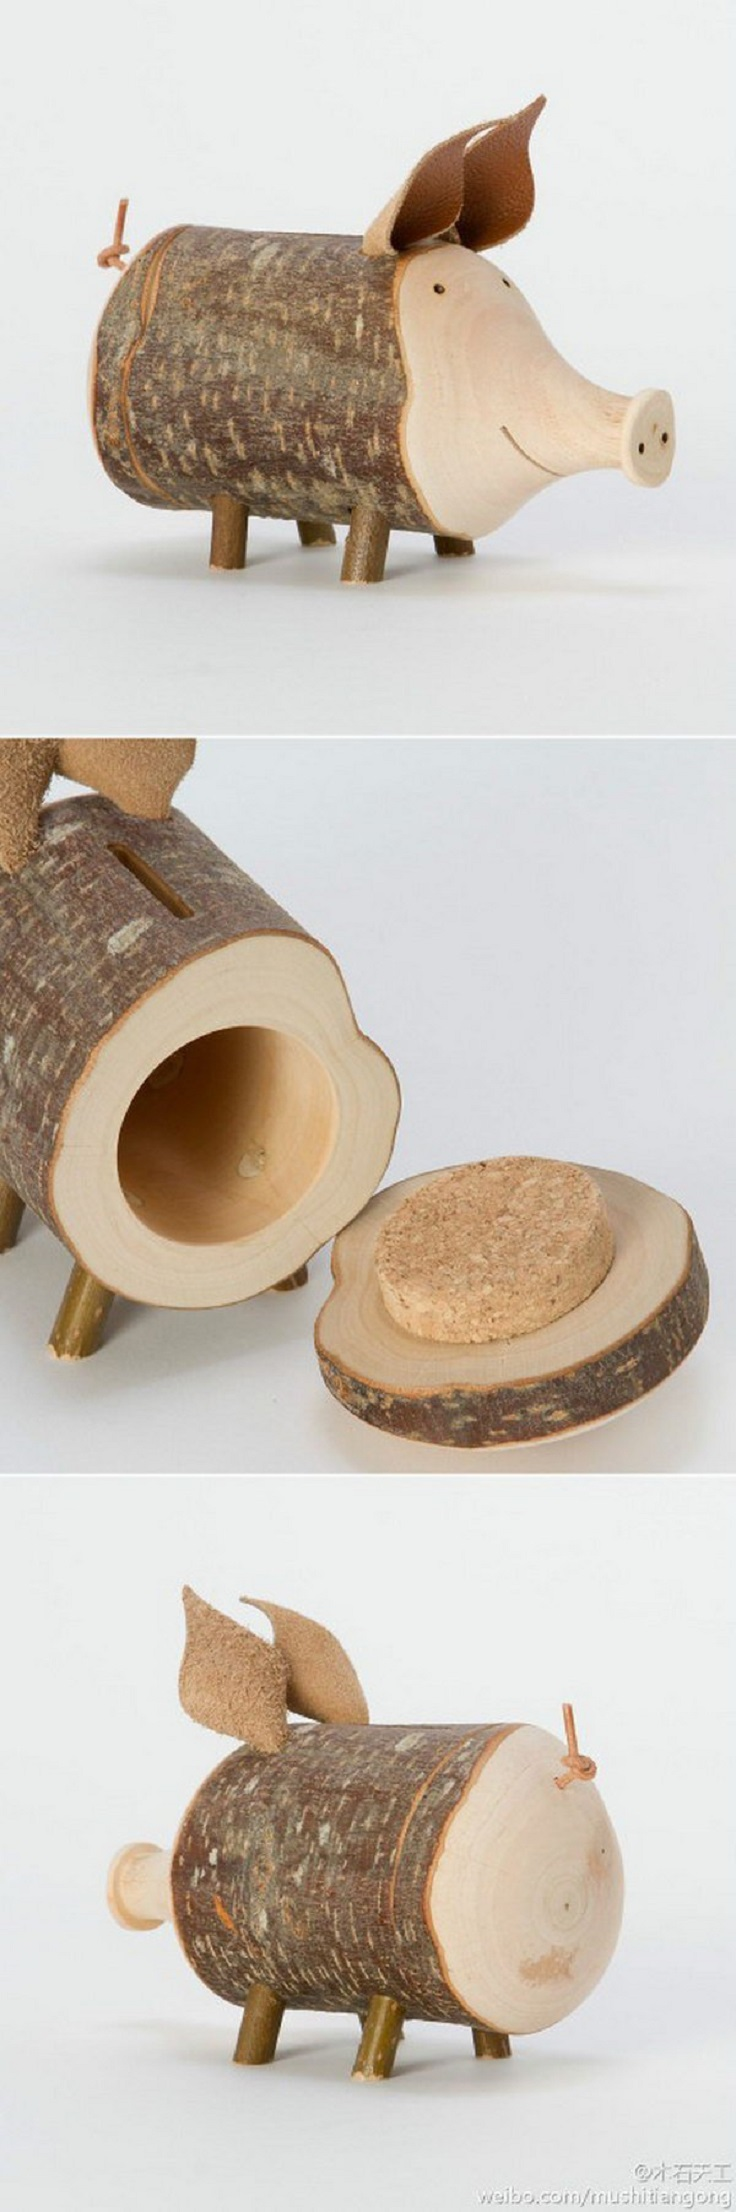 10-creative-piggy-banks-wooden-project